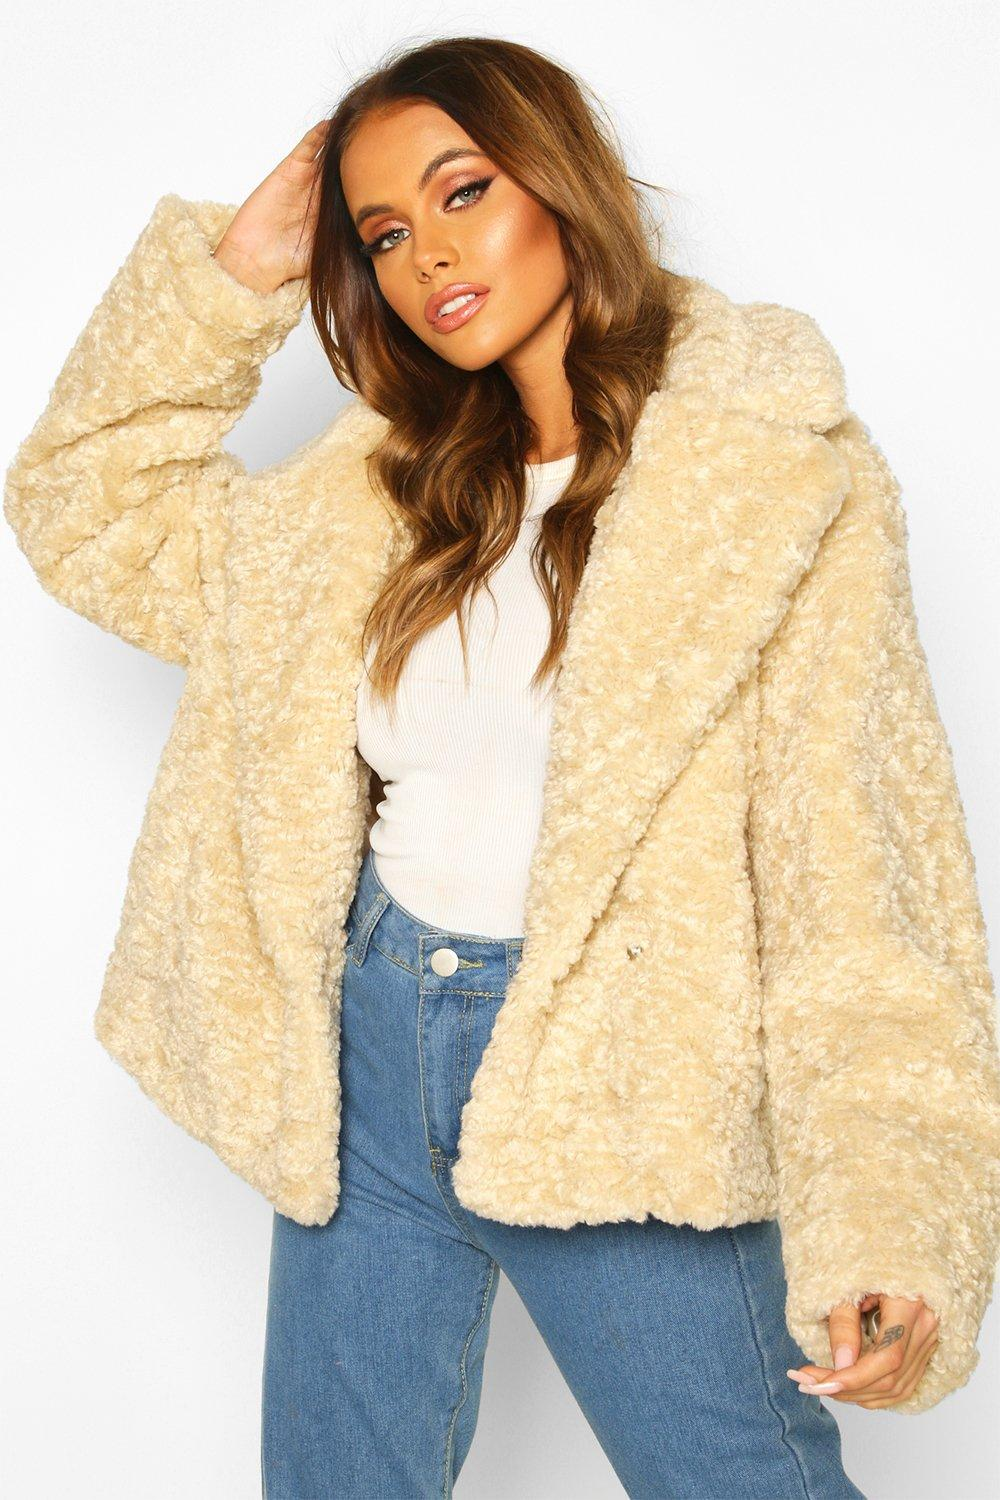 boohoo Womens Premium Textured Collared Faux Fur Coat - White - 16, White